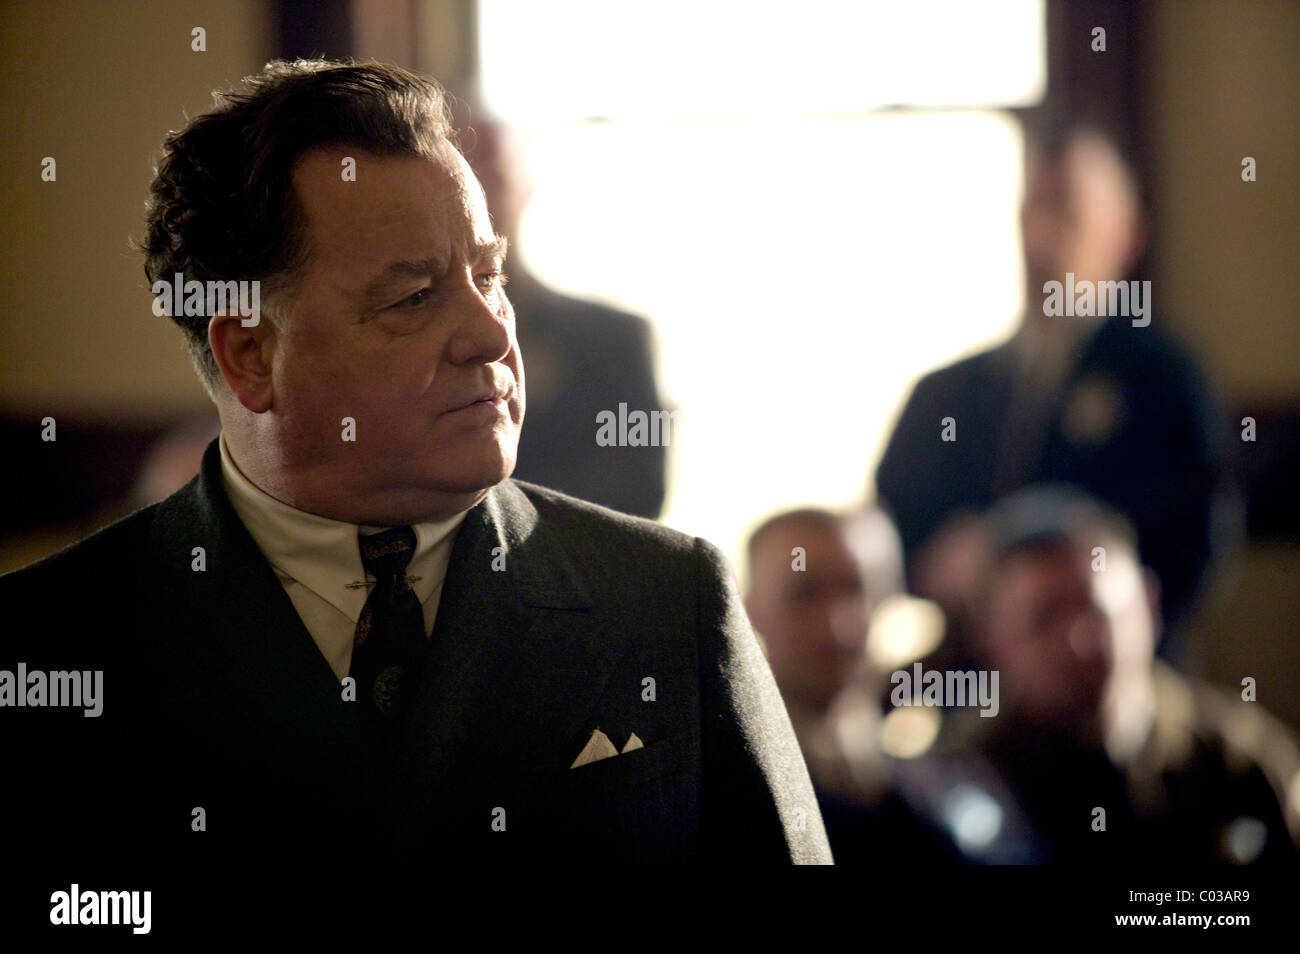 PETER GERETY PUBLIC ENEMIES (2009) - Stock Image